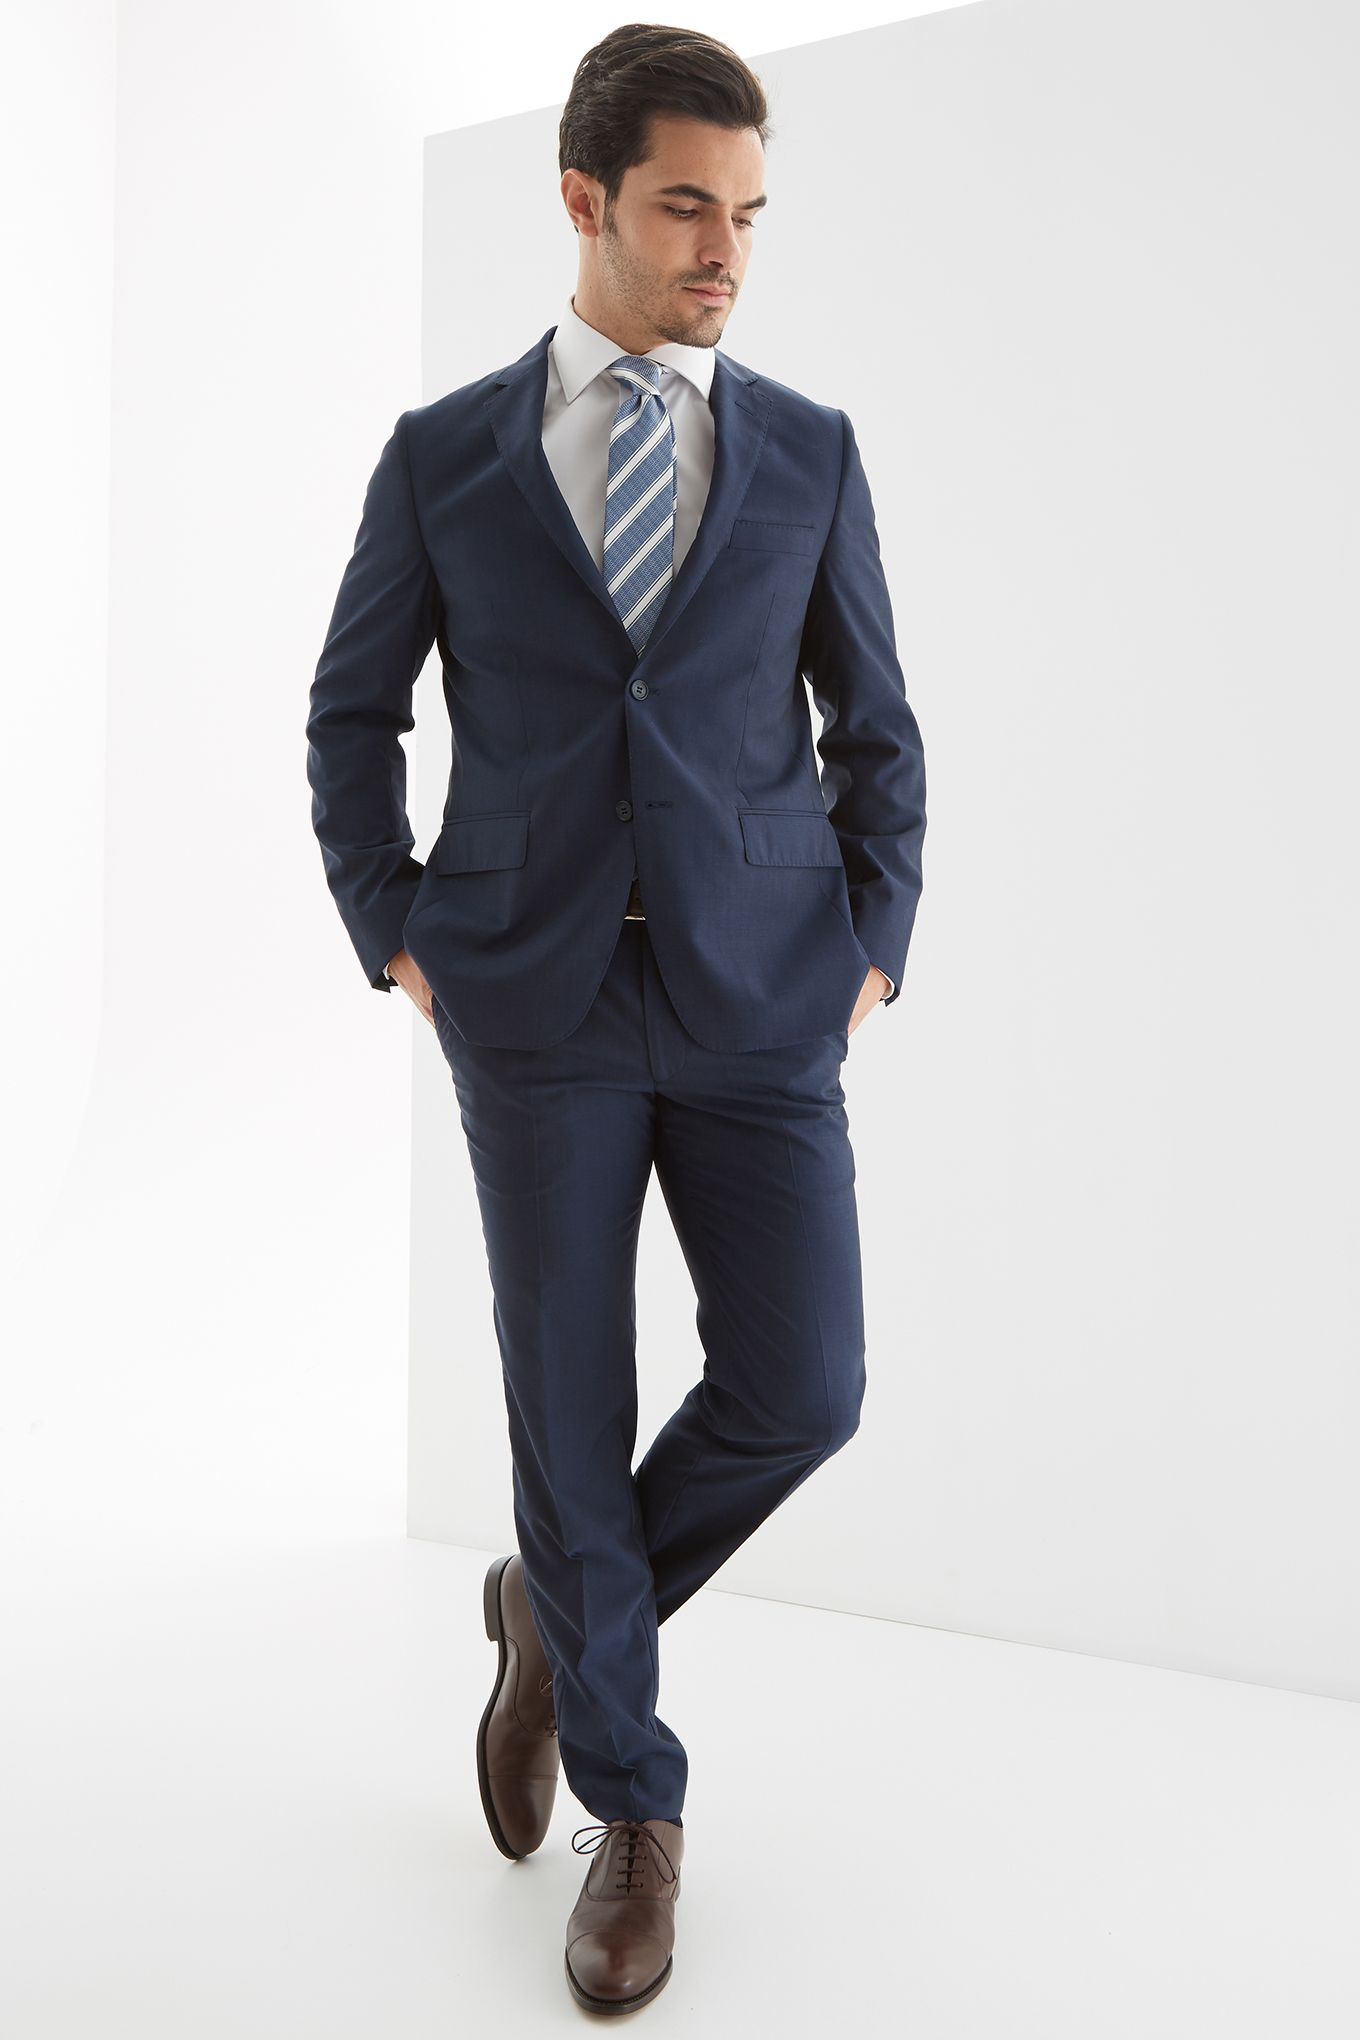 Men s Slim Fit Classic Suit.